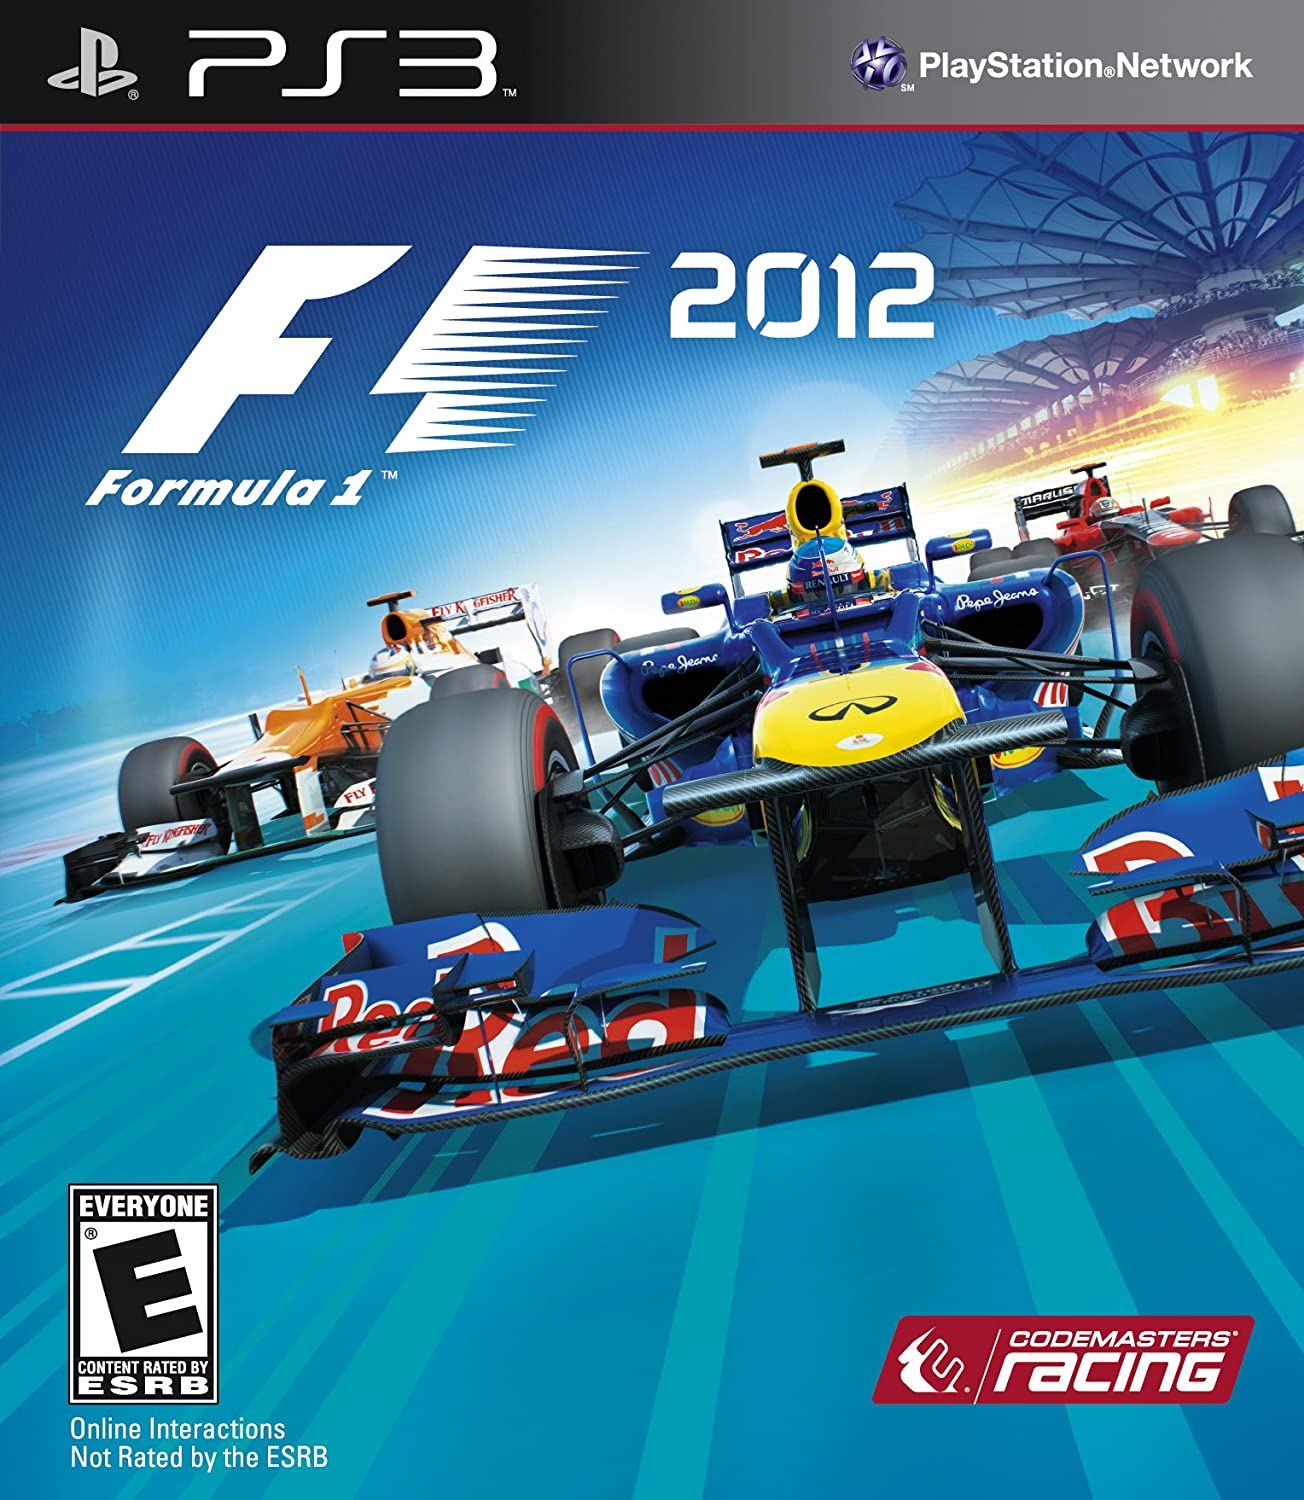 Amazon.com: F1: 2012 - Playstation 3: Whv Games: Video Games